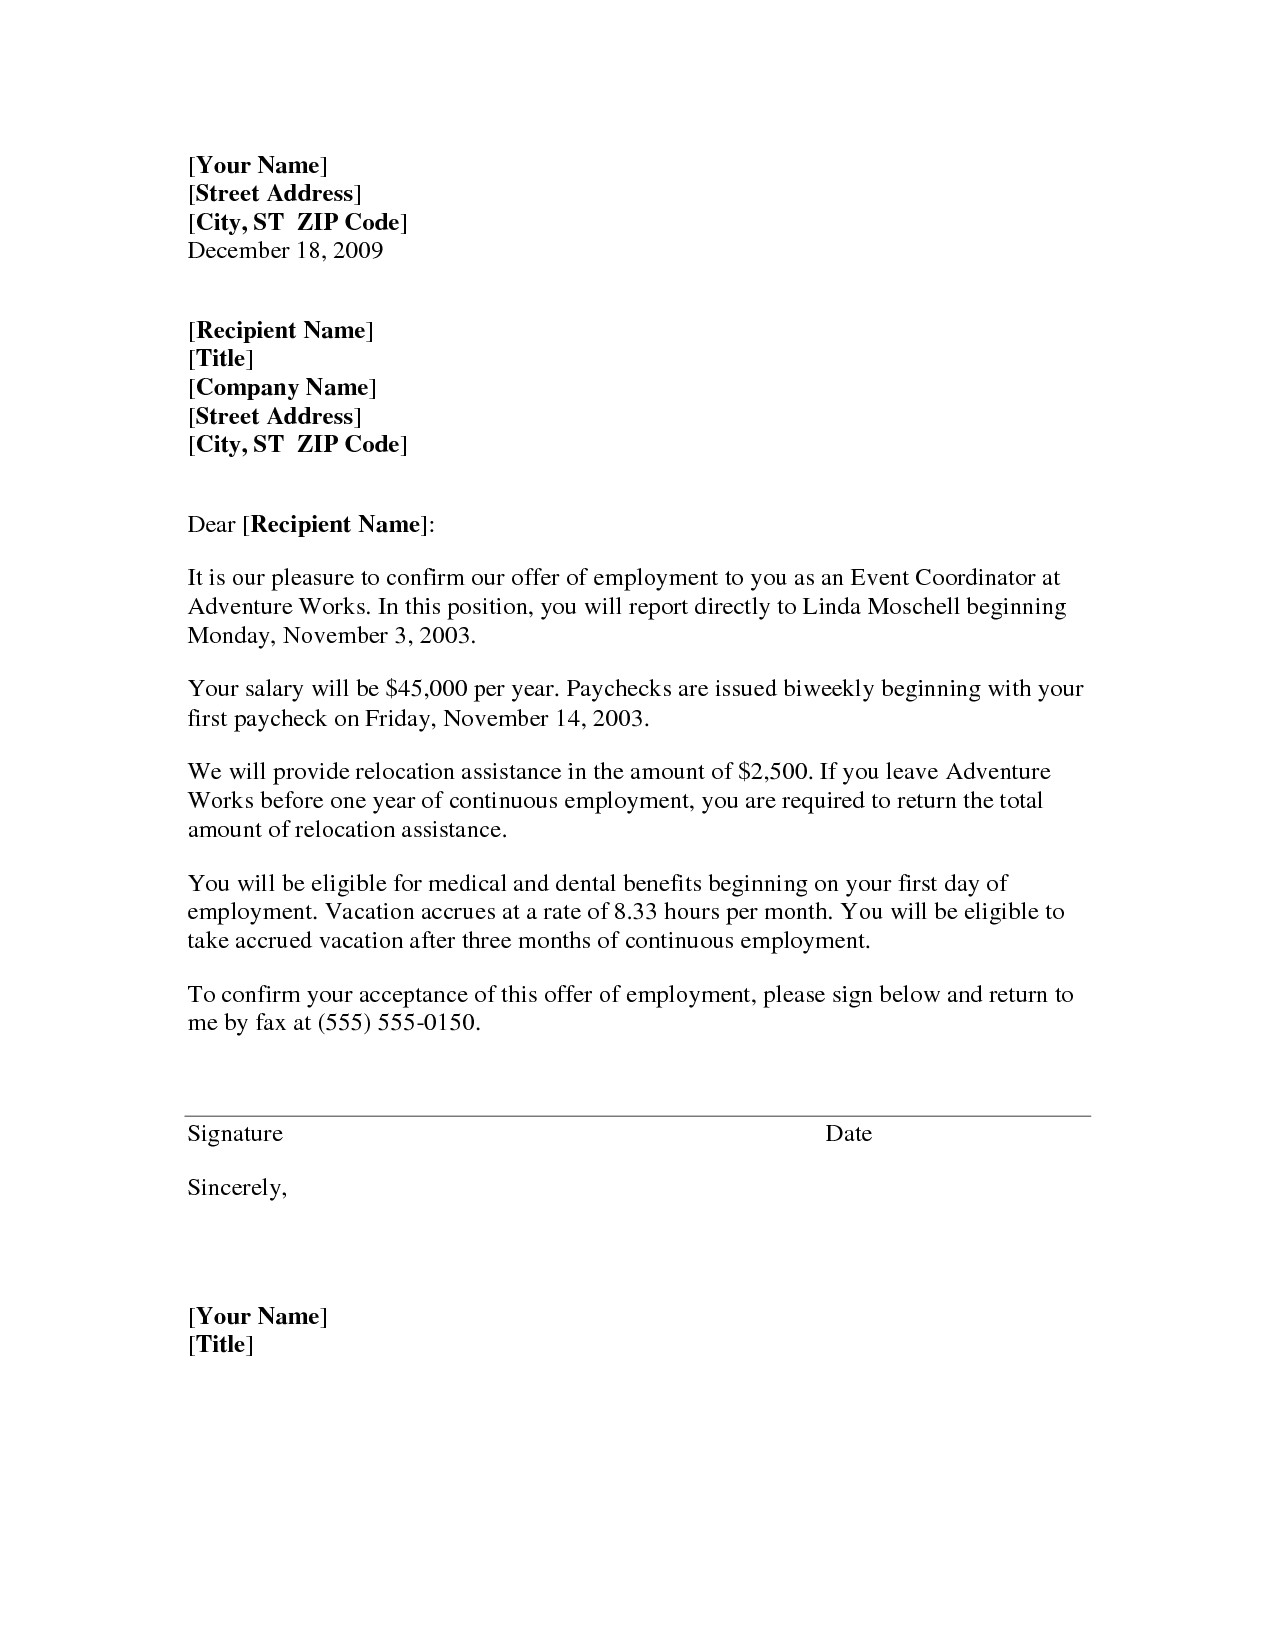 post irs cover letter sample 390479